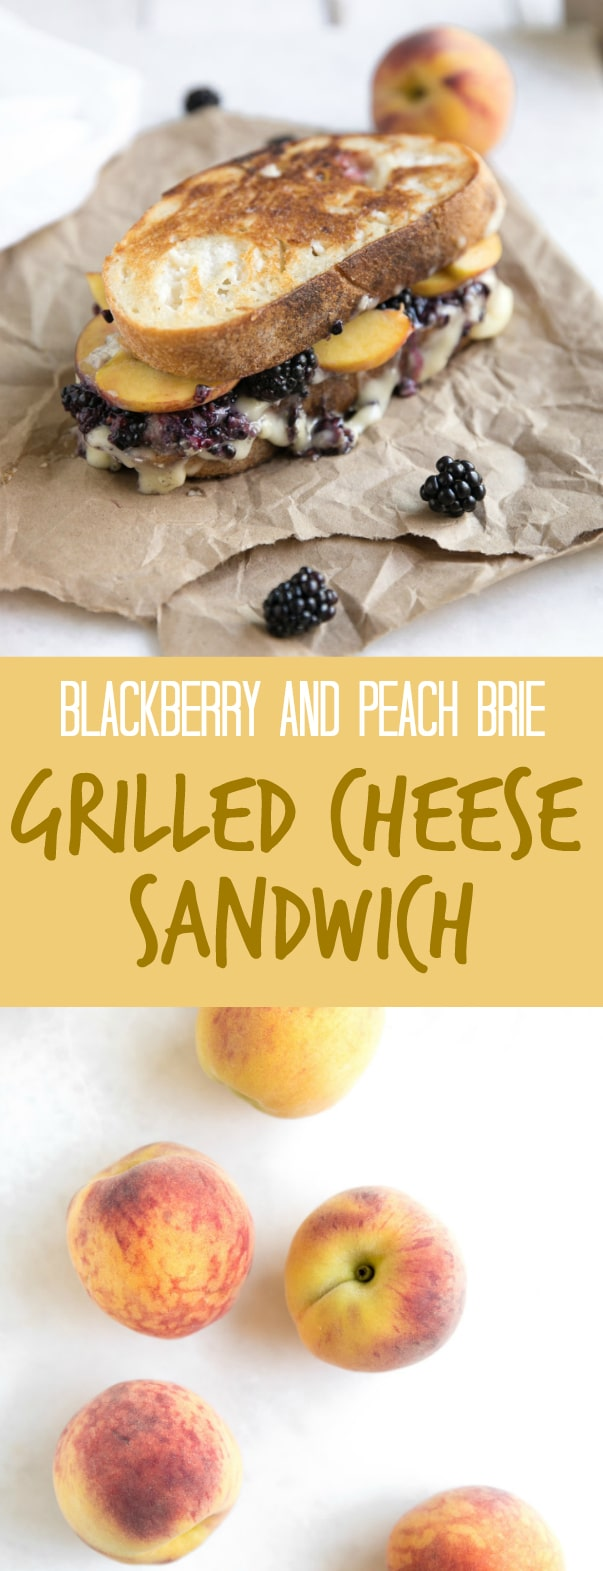 Blackberry and Peach Brie Grilled Cheese Sandwich #sandwich #grilledcheese #wine #france #brie #comfortfood #easyrecipe #ad via @theforkedspoon